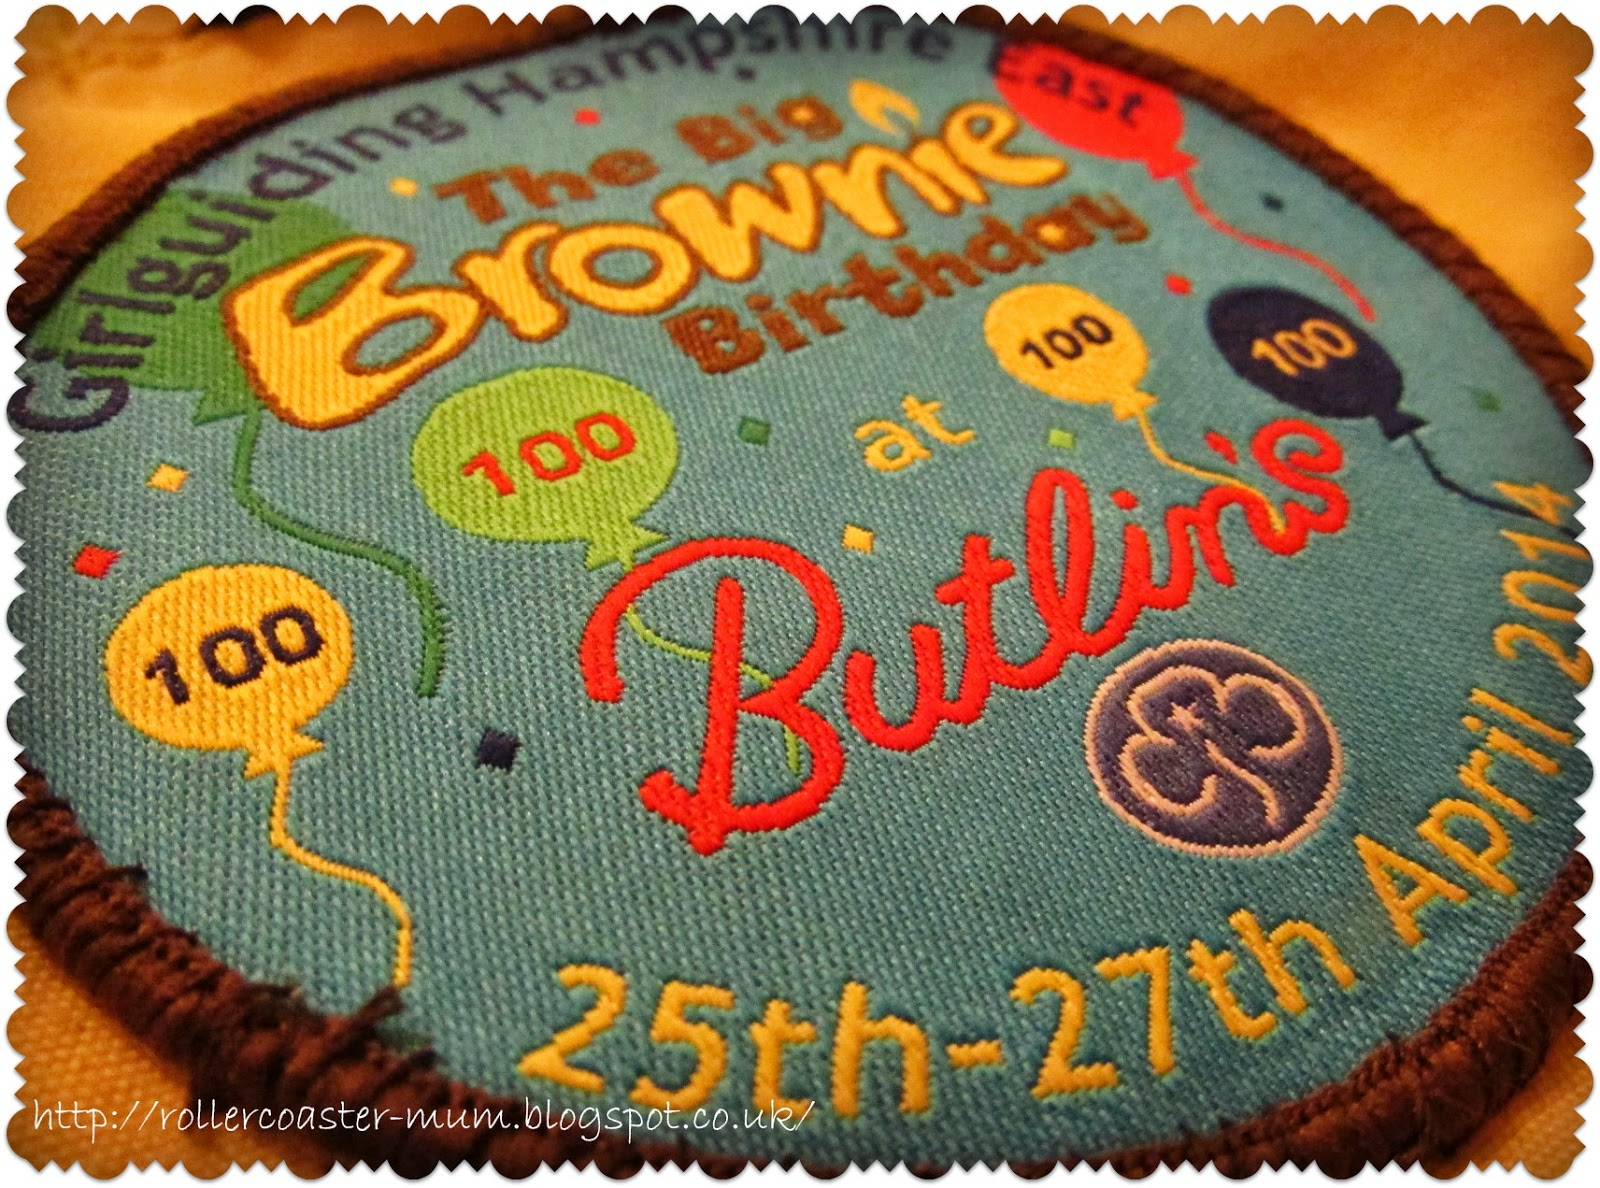 100 years - The Big Brownie Birthday Butlins badge